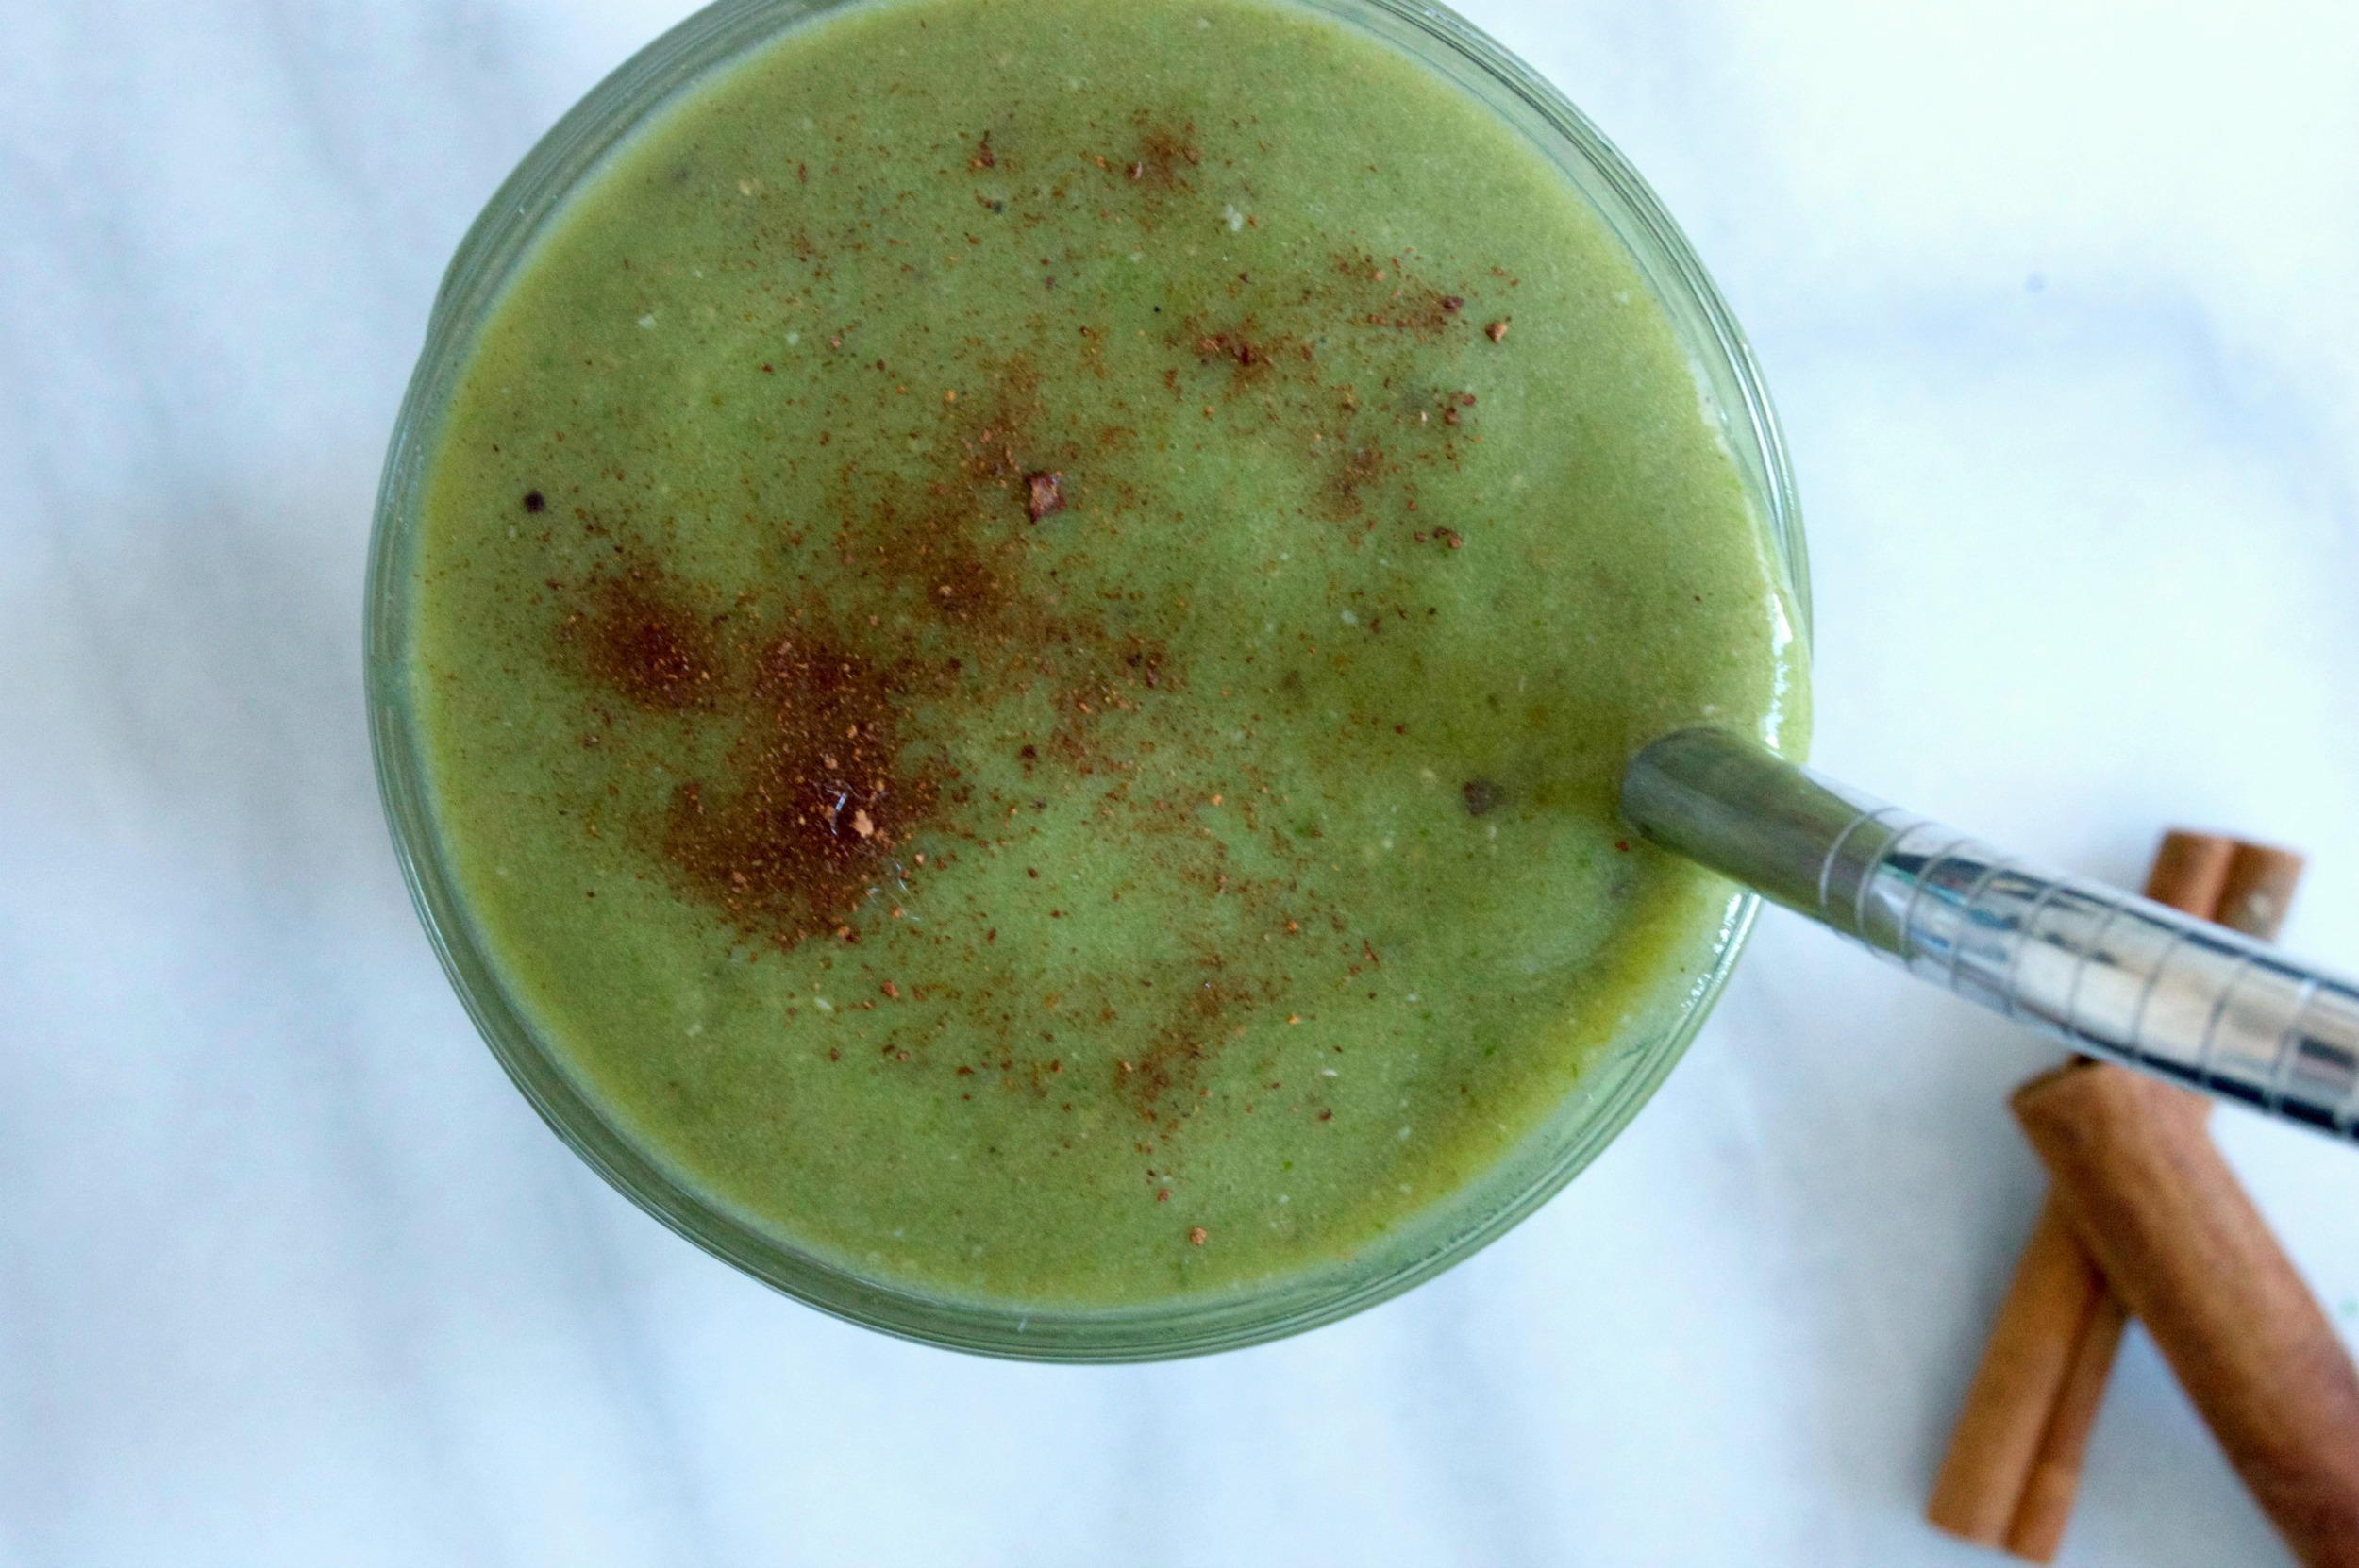 green-dream-smoothie-recipe-overhead-molasses-and-mayhem.jpg